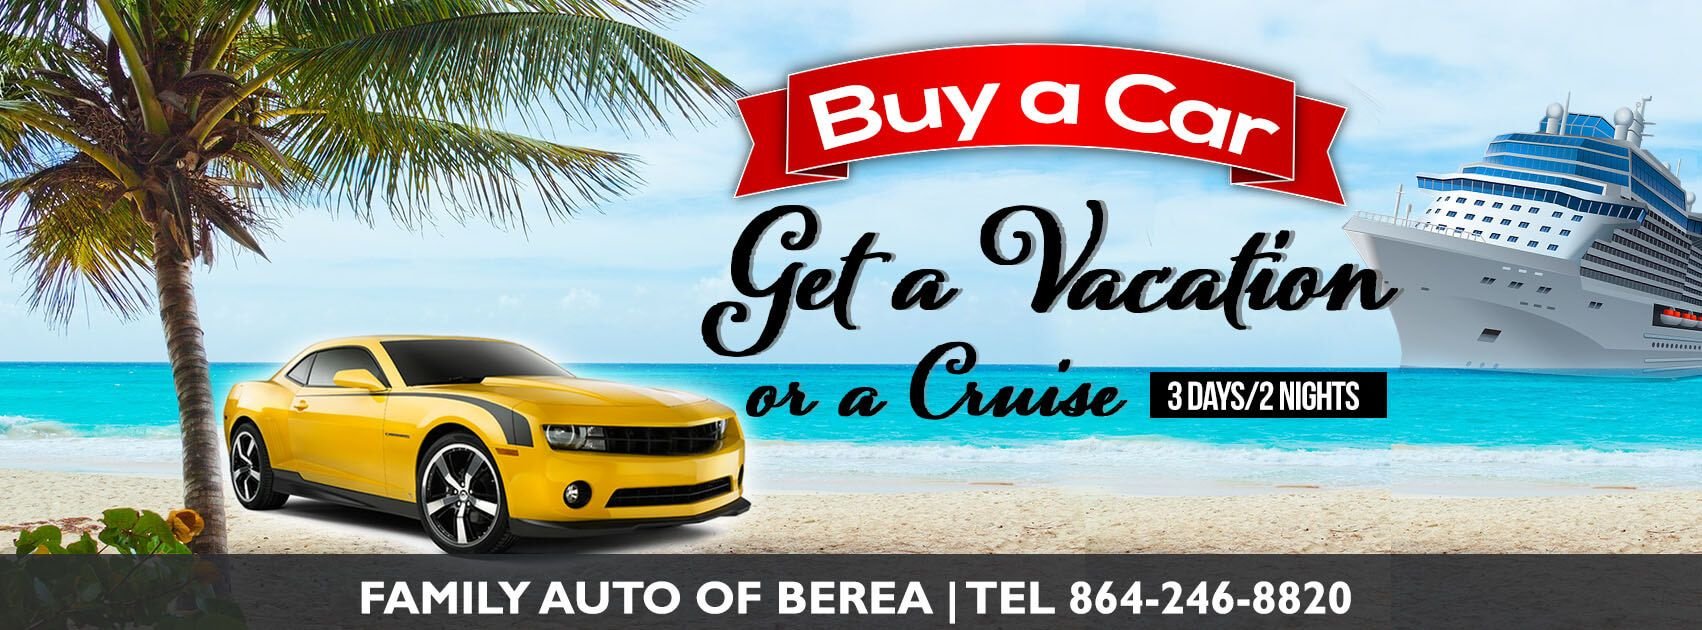 Used Cars Greenville Dealership Family Auto Of Berea Buy Here Pay